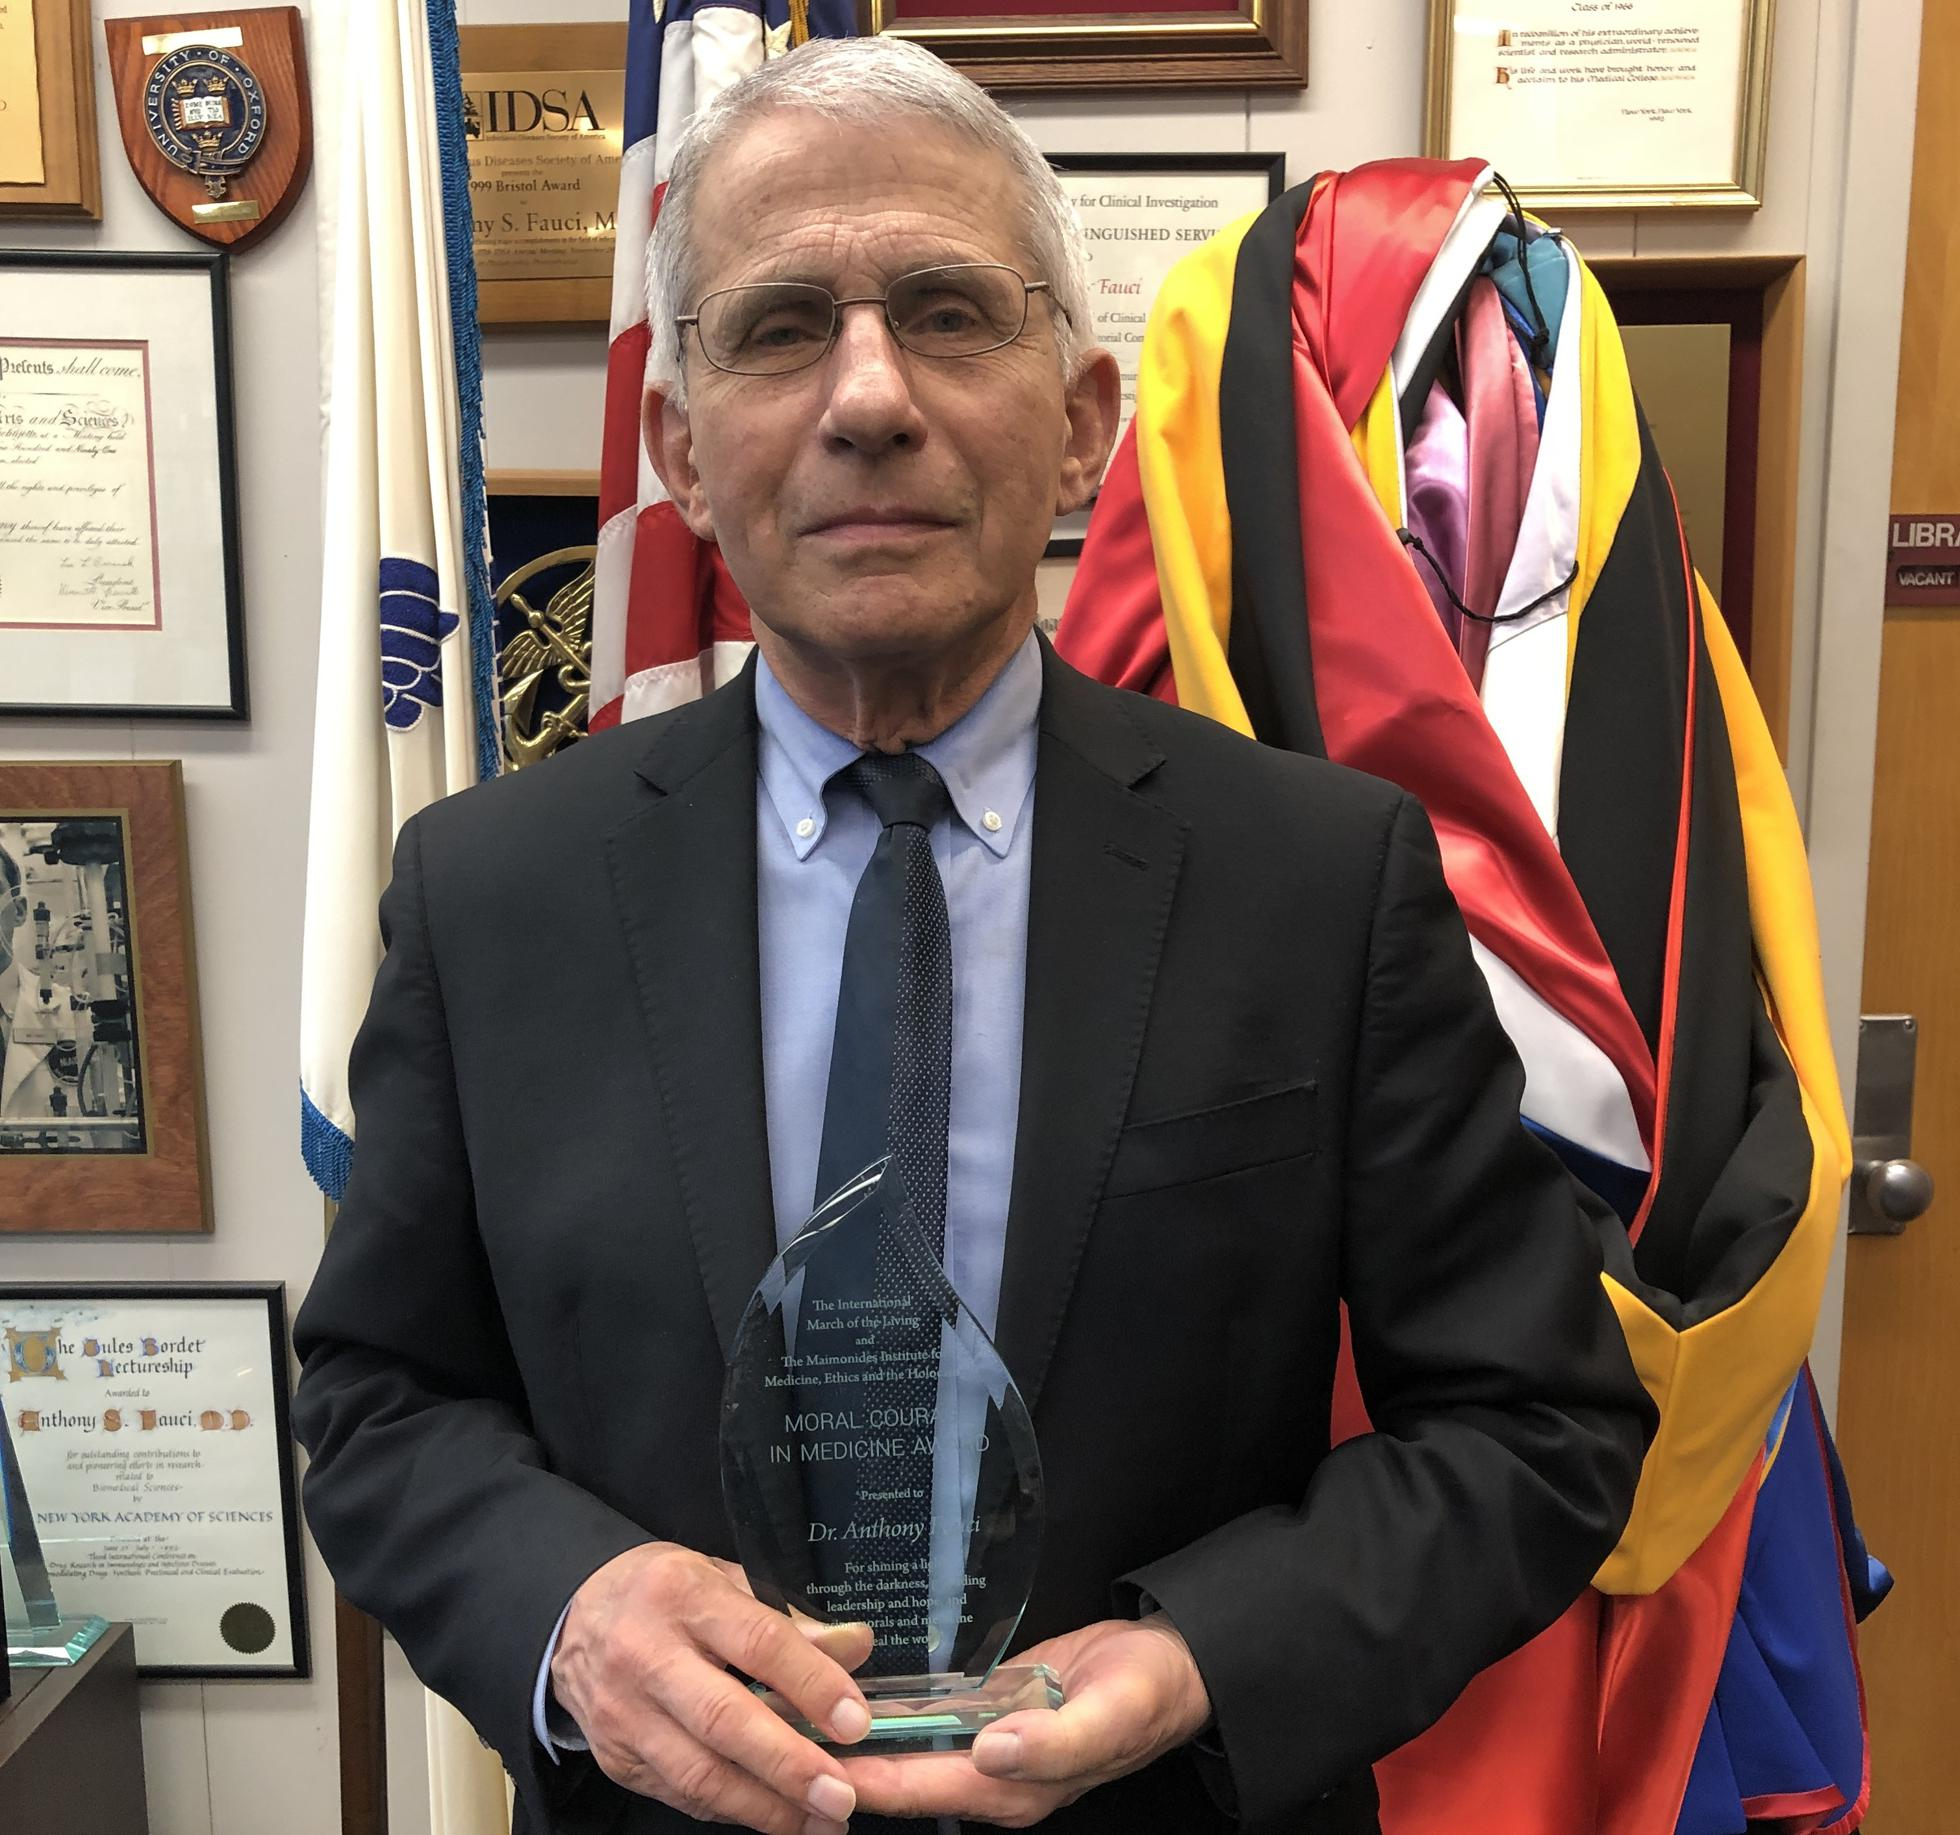 Dr. Facui holding the Moral Courage in Medicine Award.